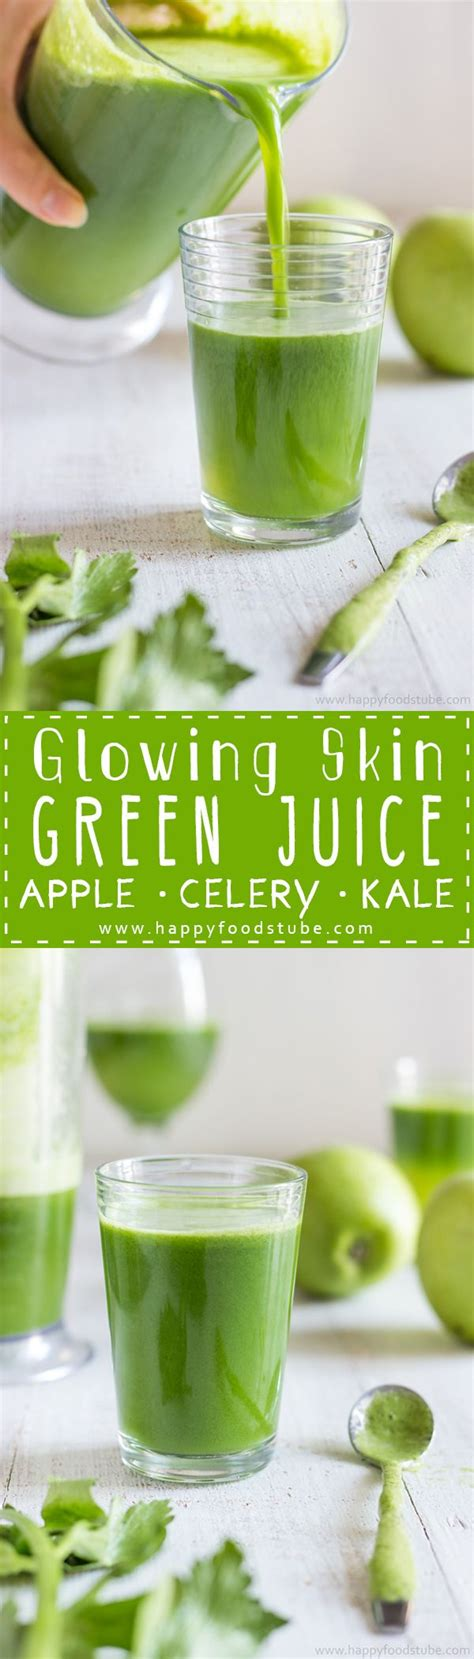 juice recipe skin glowing healthy recipes glow detox ingredients happyfoodstube easy juicing juices tube cleanse happy fresh give drinks health